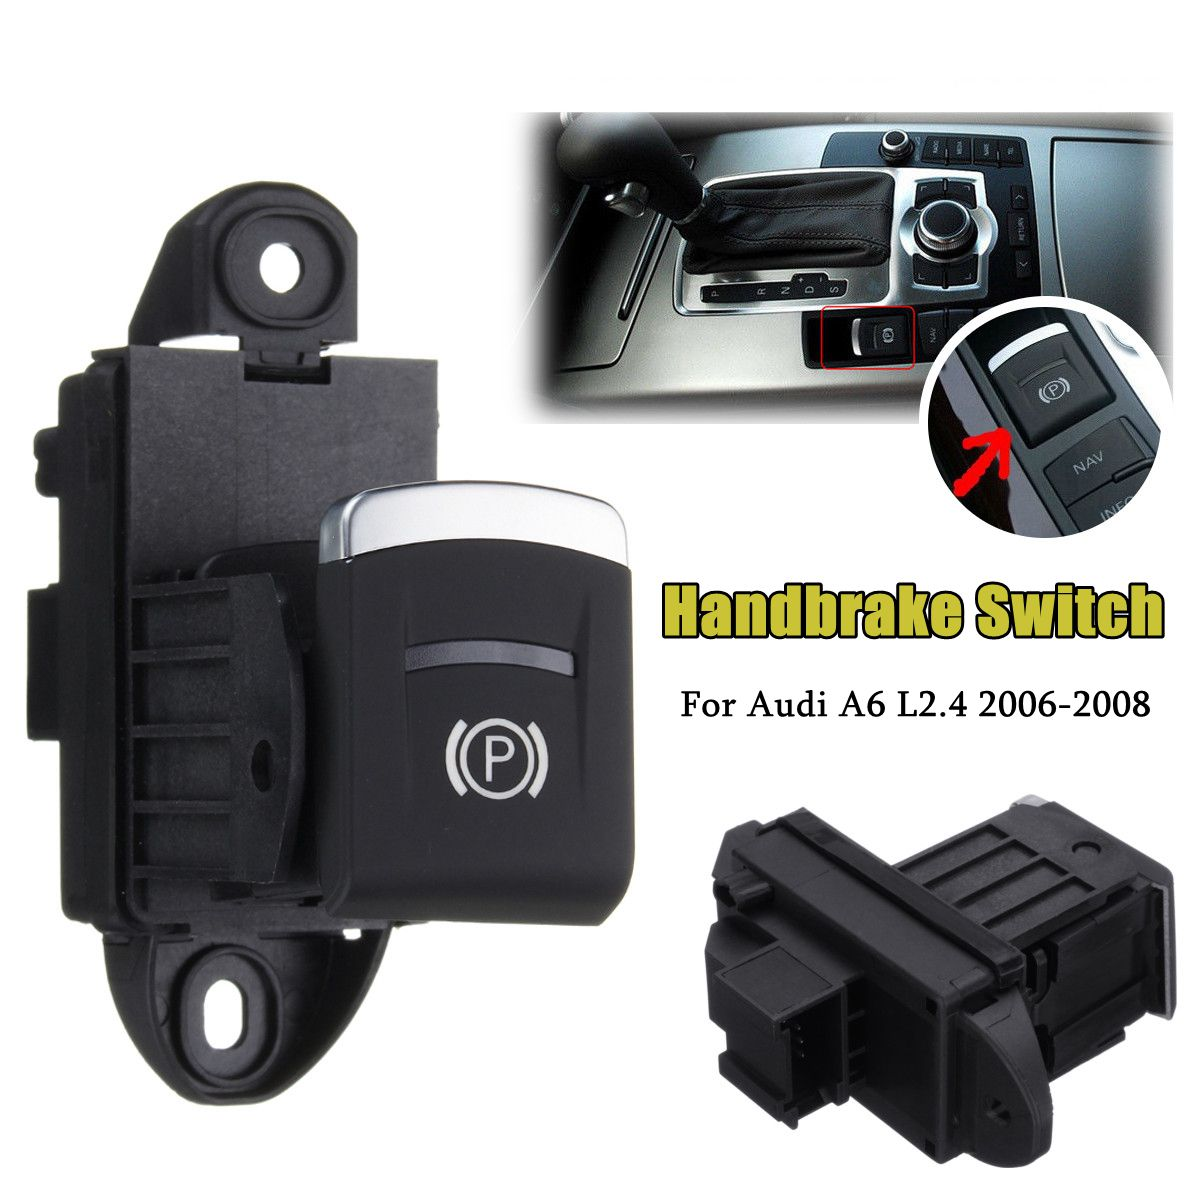 10 Pins Car Parking Brake Handbrake Stop Button Switch Replacement For <font><b>Audi</b></font> <font><b>A6</b></font> C6 L2.4 <font><b>2006</b></font> 2007 2008 4F1927225C image